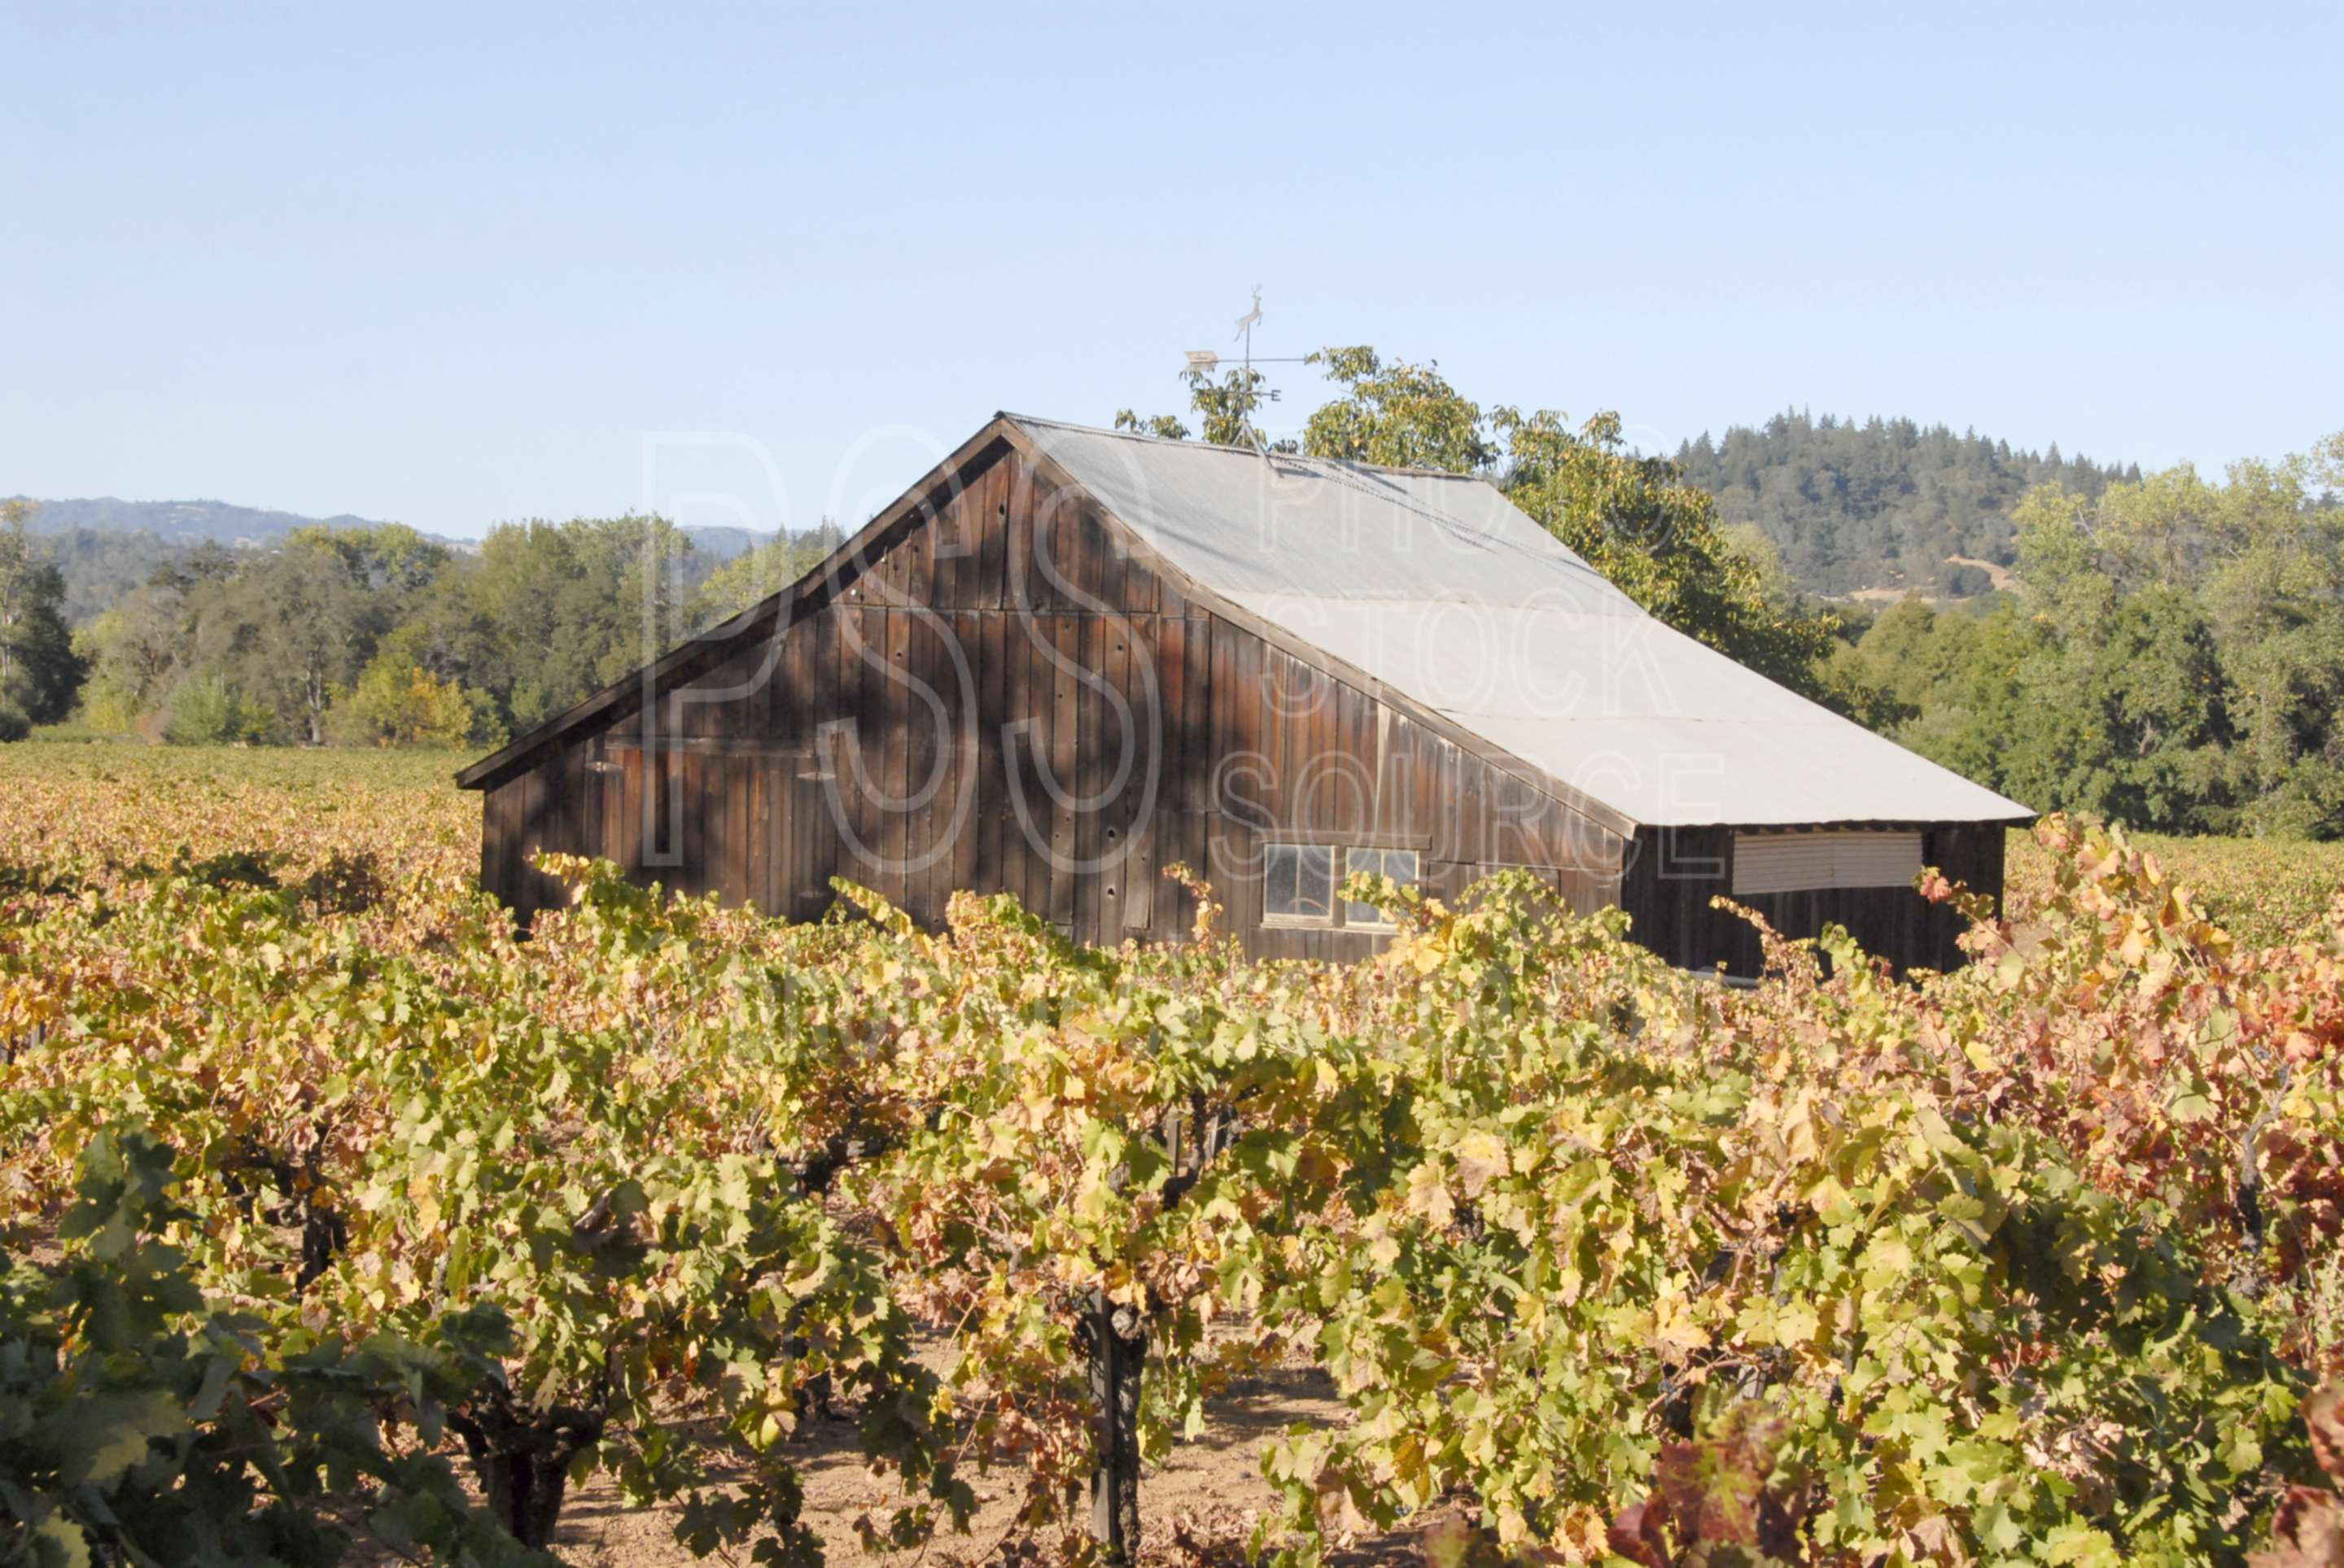 Winery Barn,wine,drinking,grape,agriculture,vineyard,winery,barn,barns